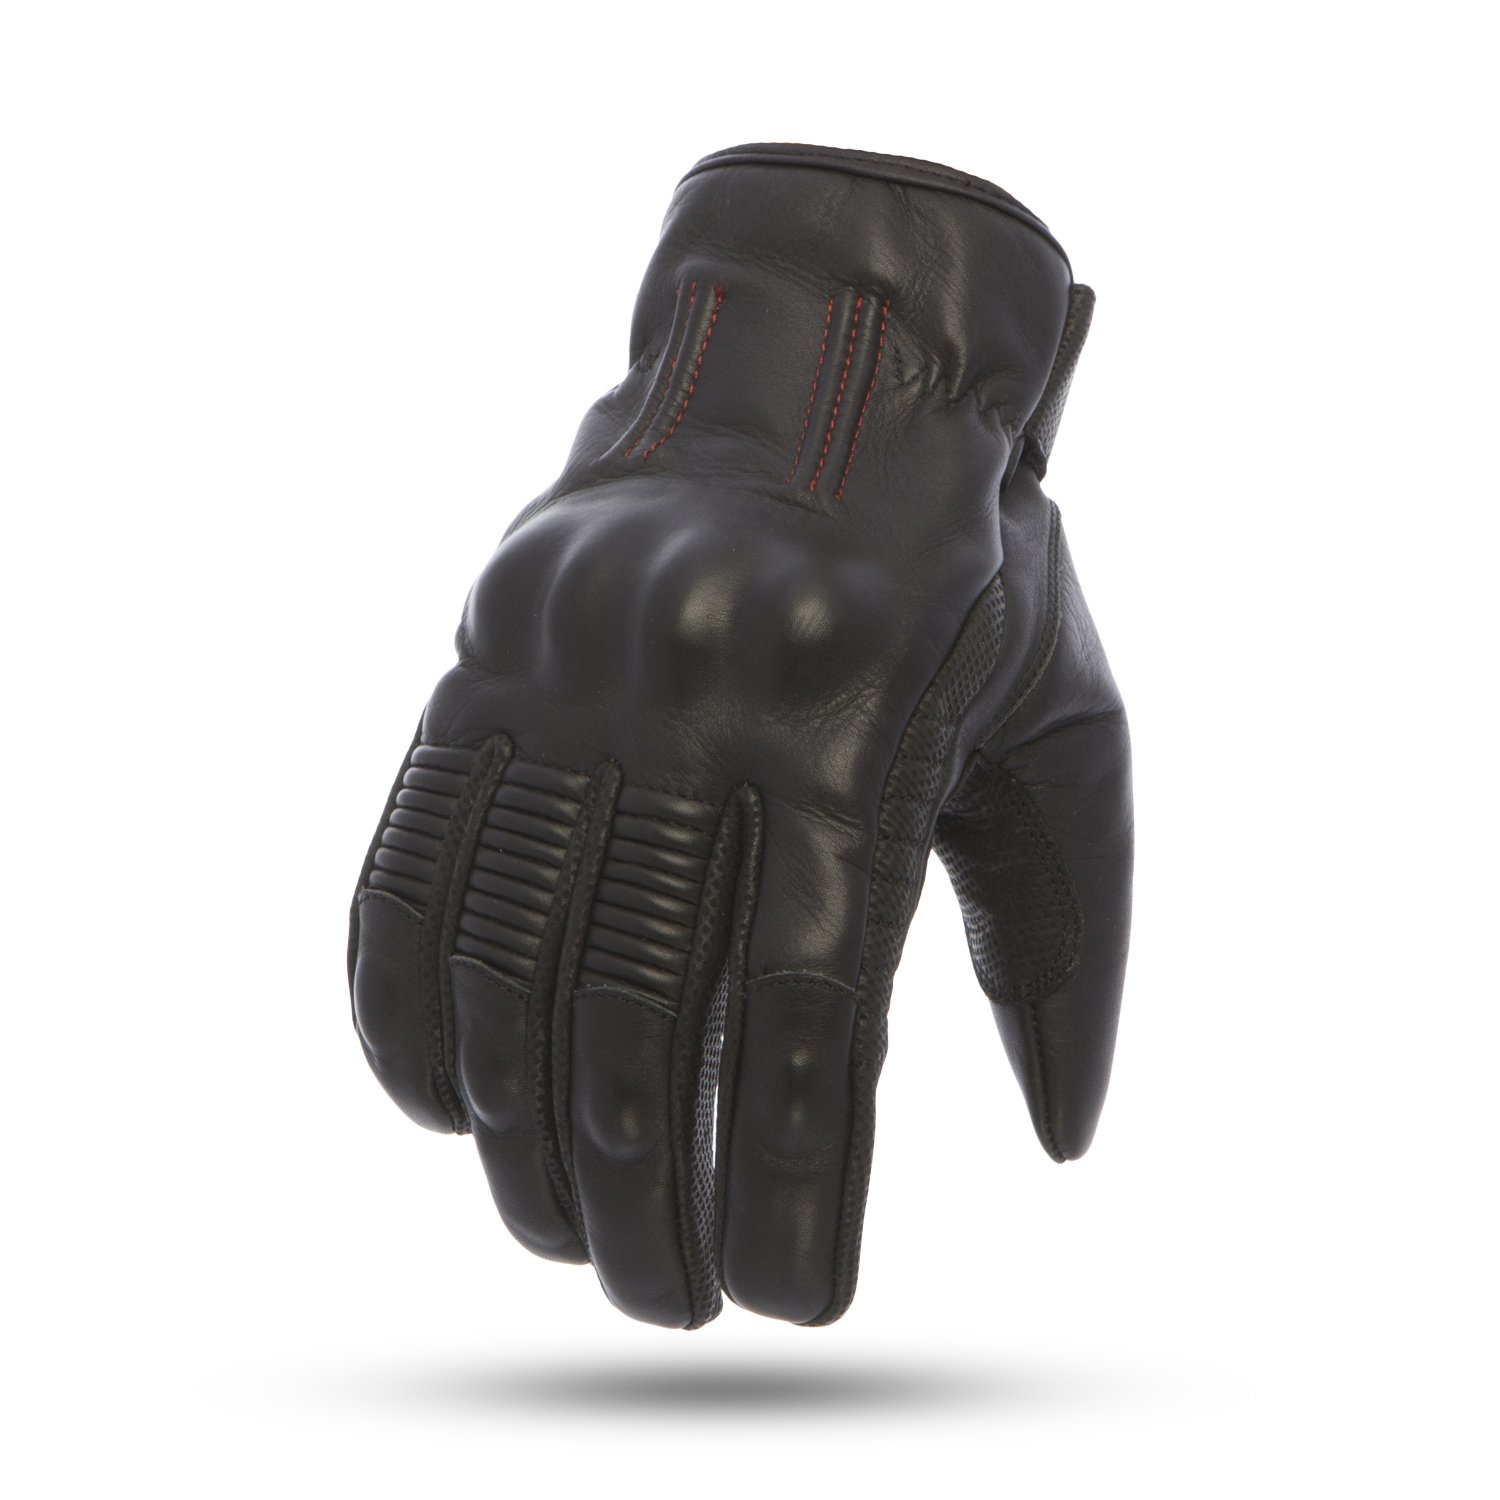 First Mfg Co Mens Laguna Leather Motorcycle Gloves Black XL